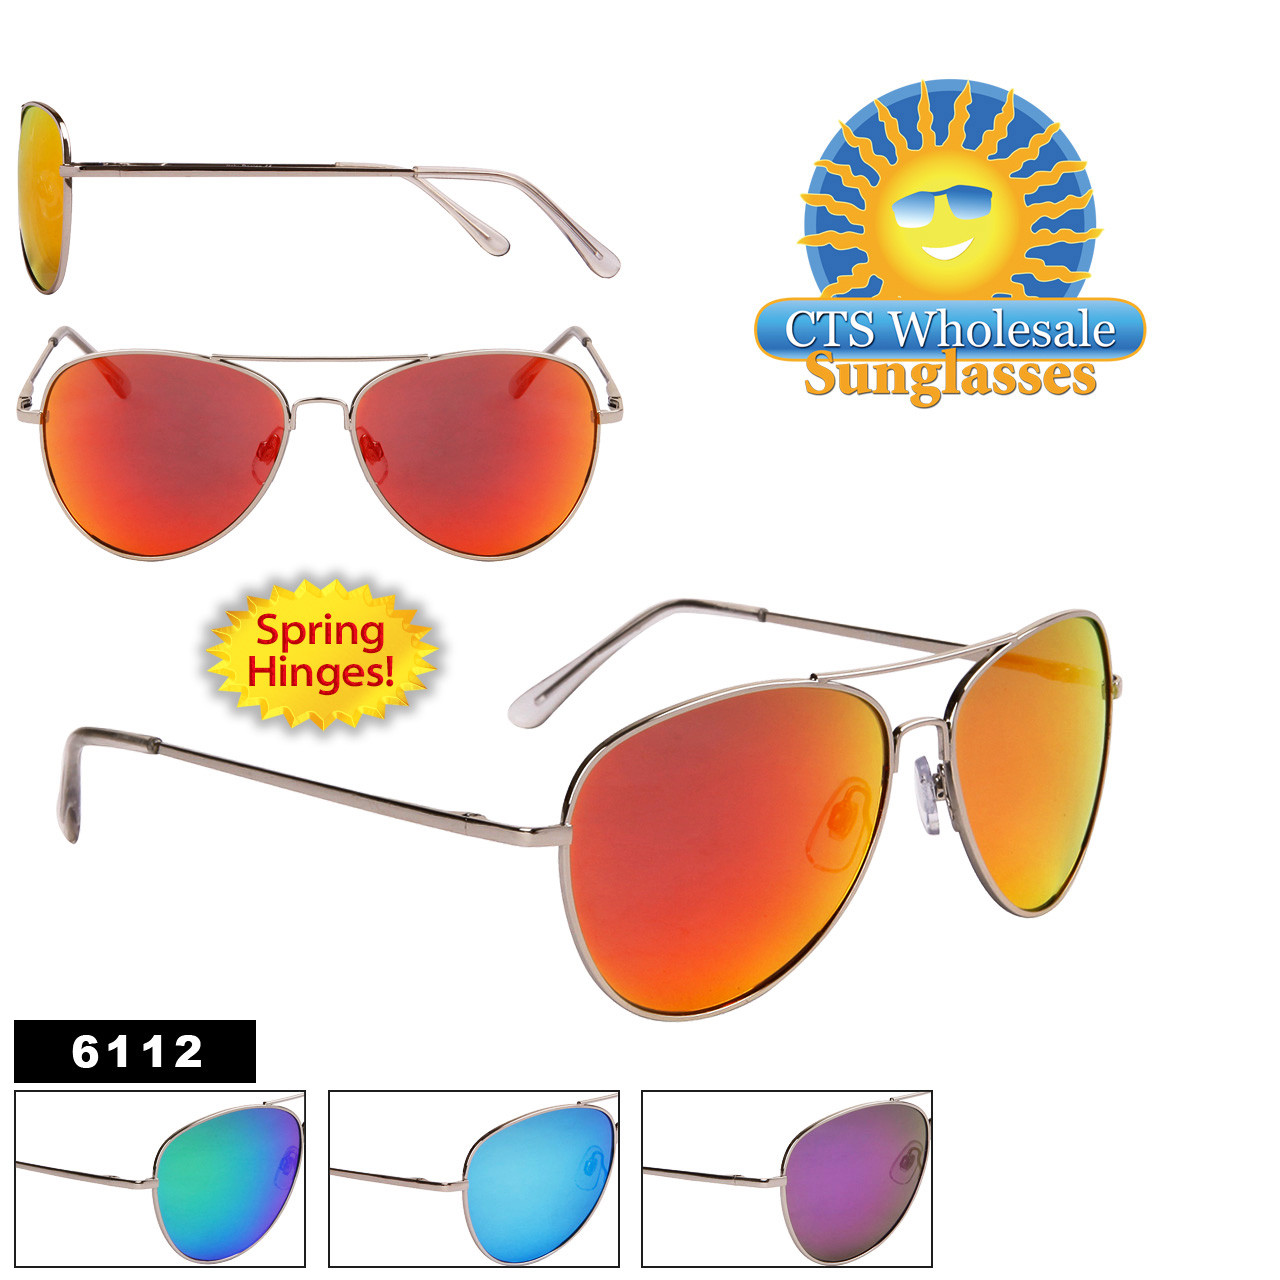 Mirror Aviator Sunglasses - Style #6112 Spring Hinge (Assorted Colors) (12 pcs.)